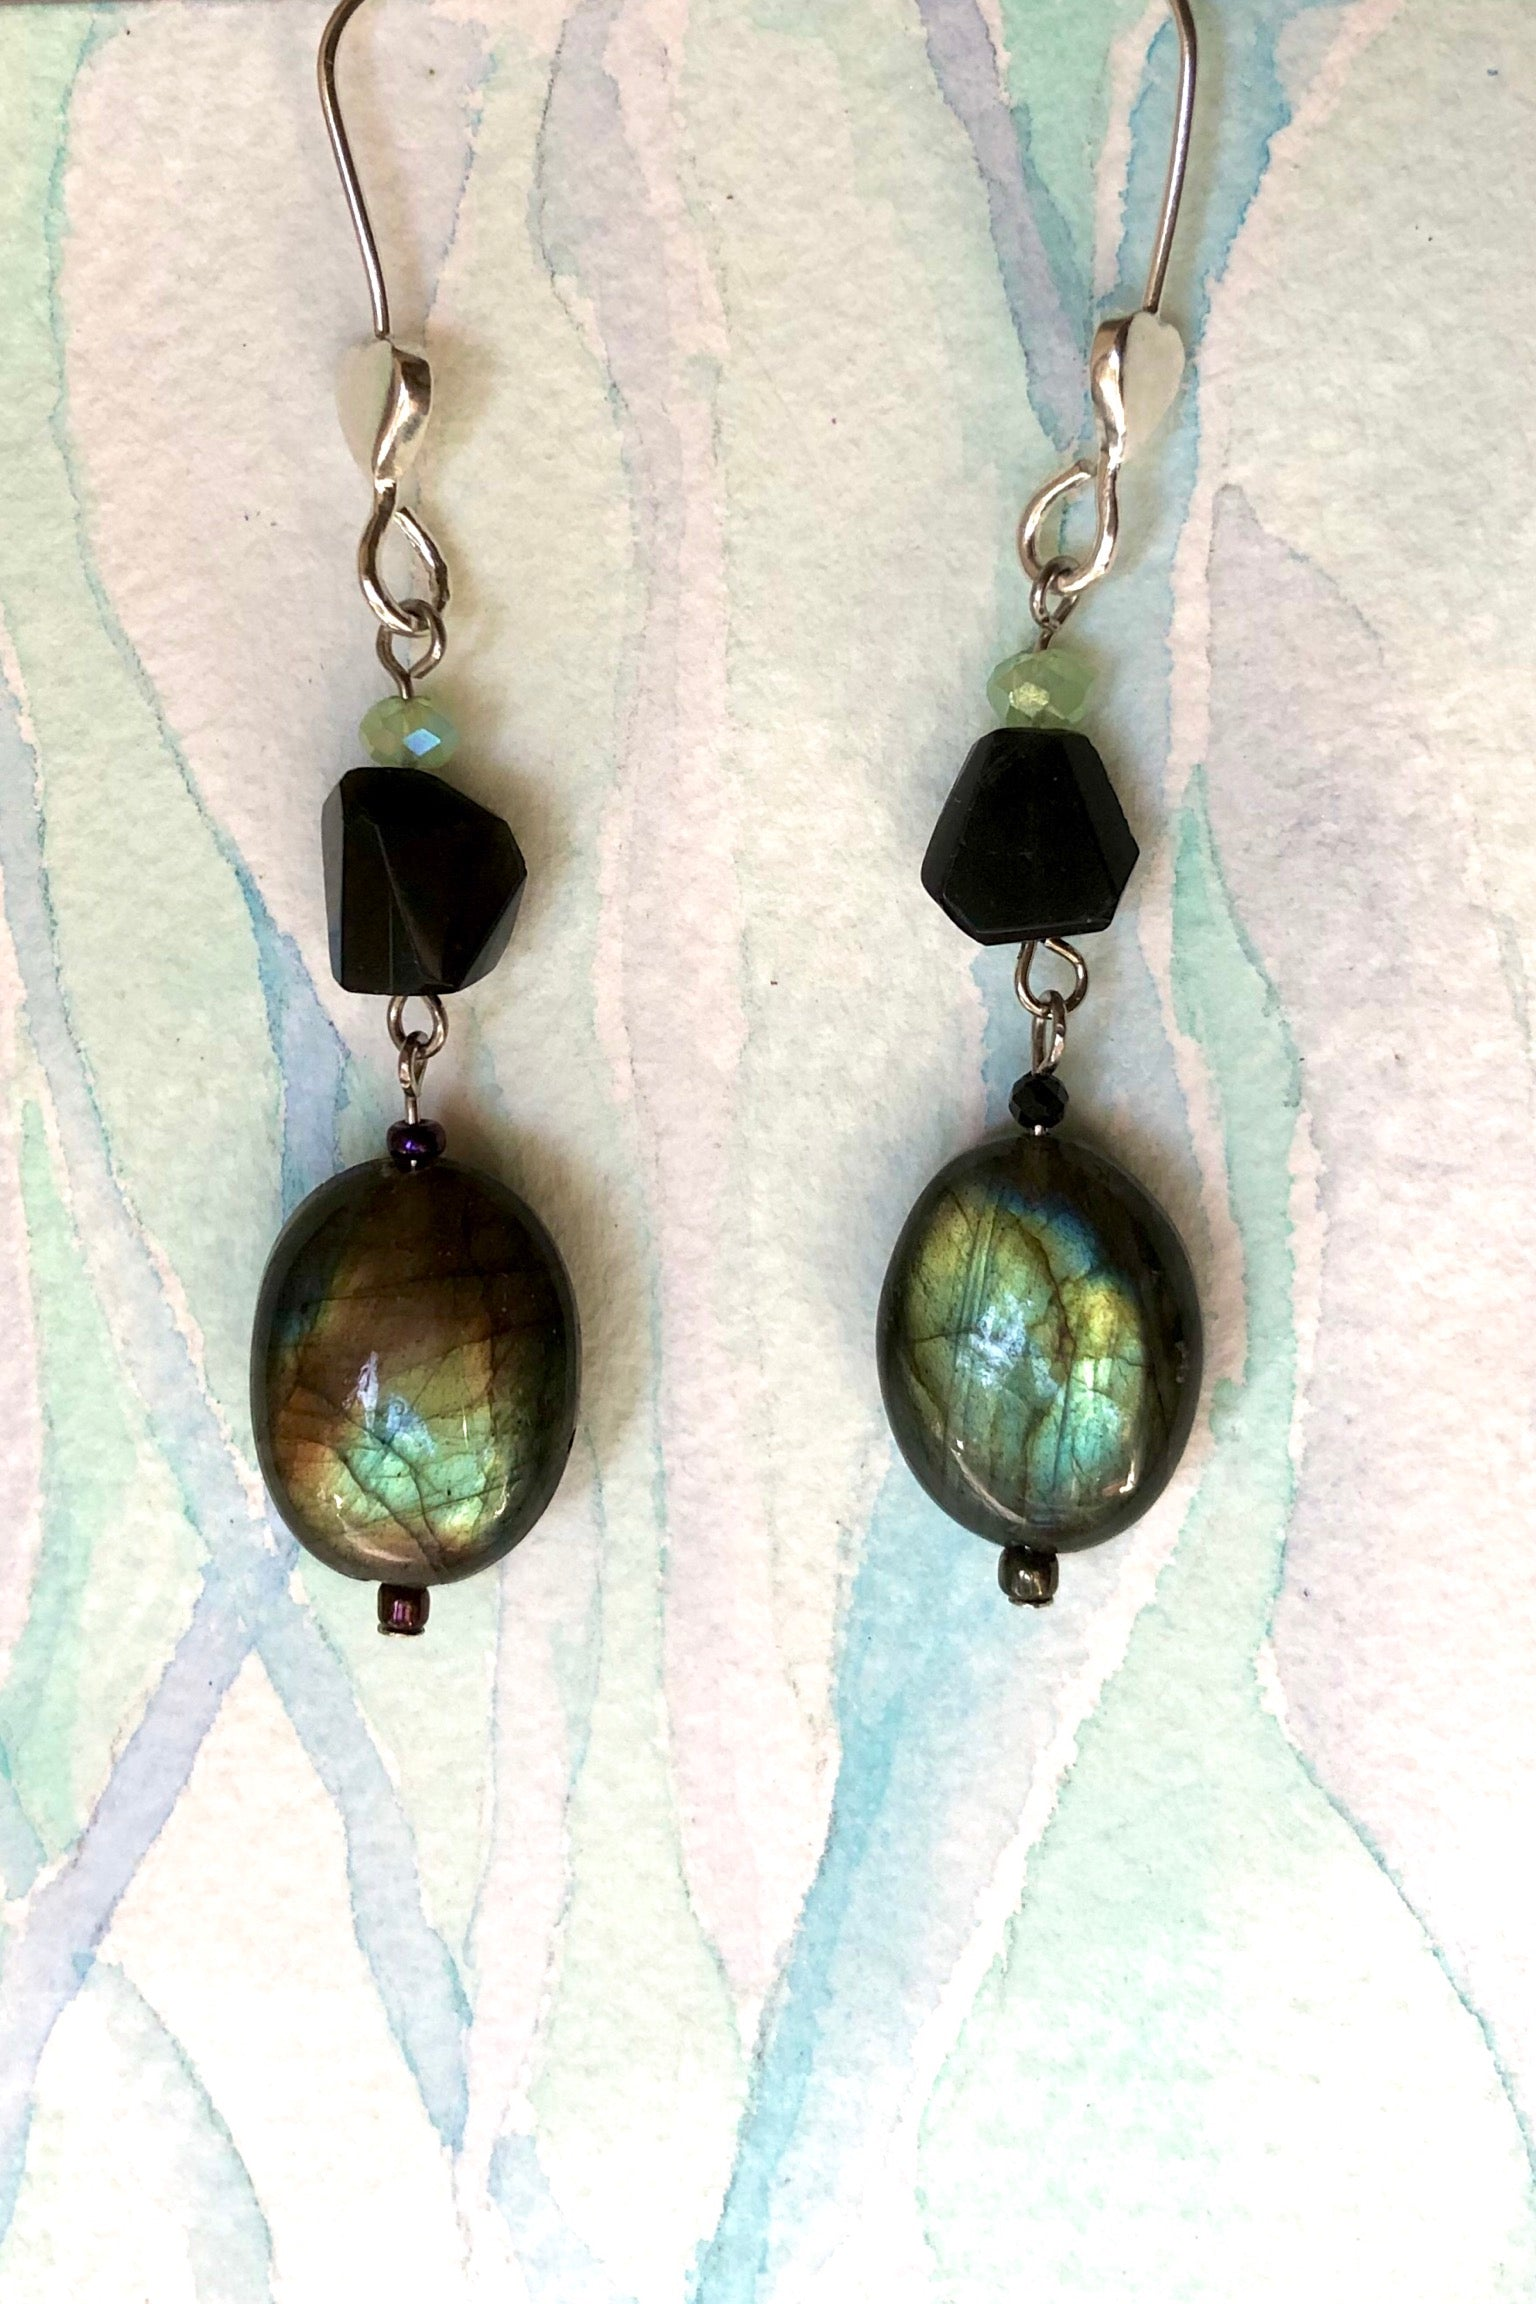 The Serendipity Earrings Labradorite Eve are handmade in Noosa featuring Natural black onyx bead, Oval Labradorite bead, Green Quartz bead and hook is 925 Silver.